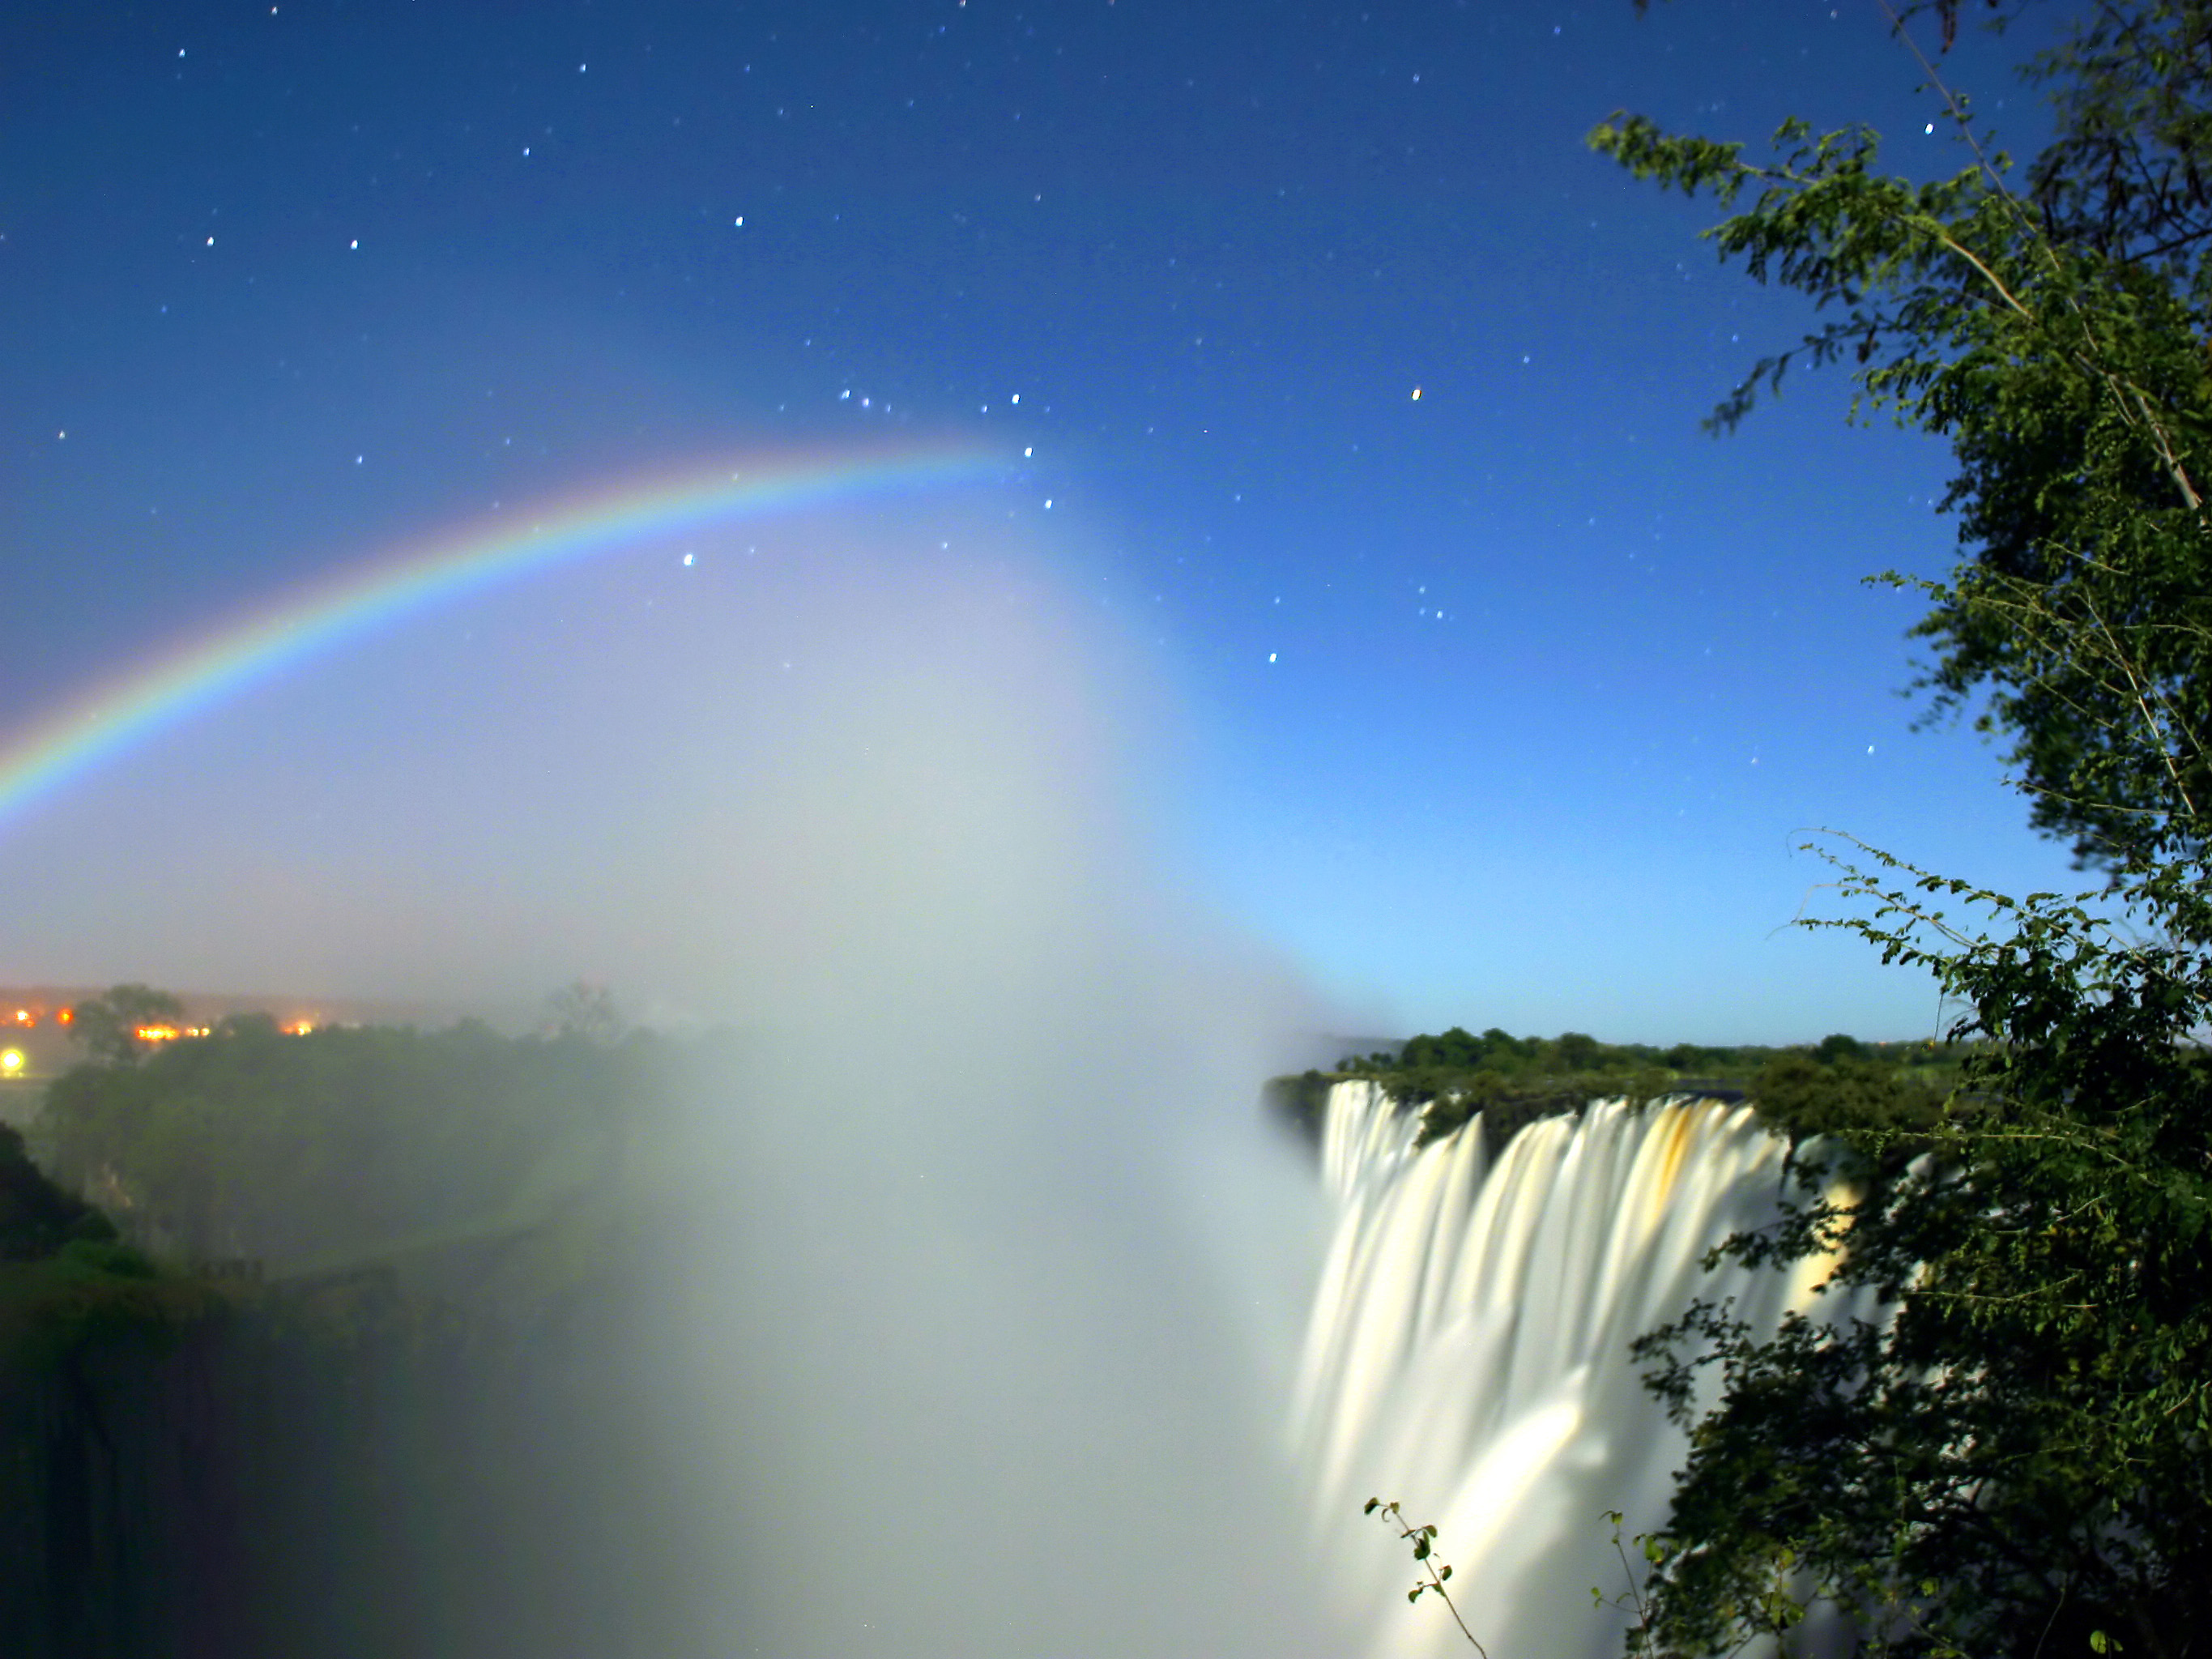 https://upload.wikimedia.org/wikipedia/commons/c/cb/Lunar_Rainbow_3_-_ORION_L_-_Victoria_Falls_-_Calvin_Bradshaw_3.jpg